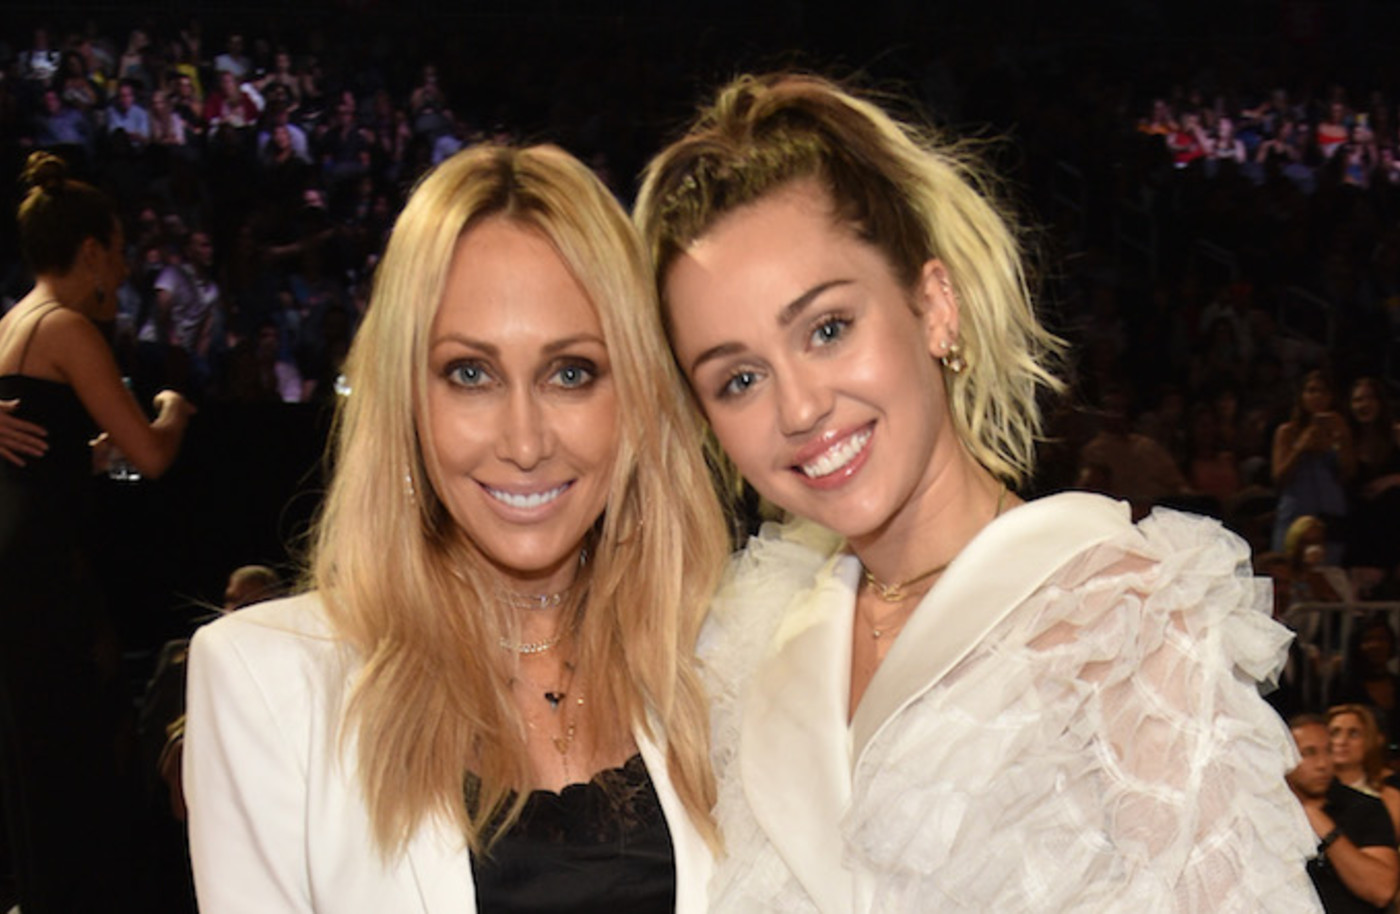 Tish and Miley Cyrus in Las Vegas